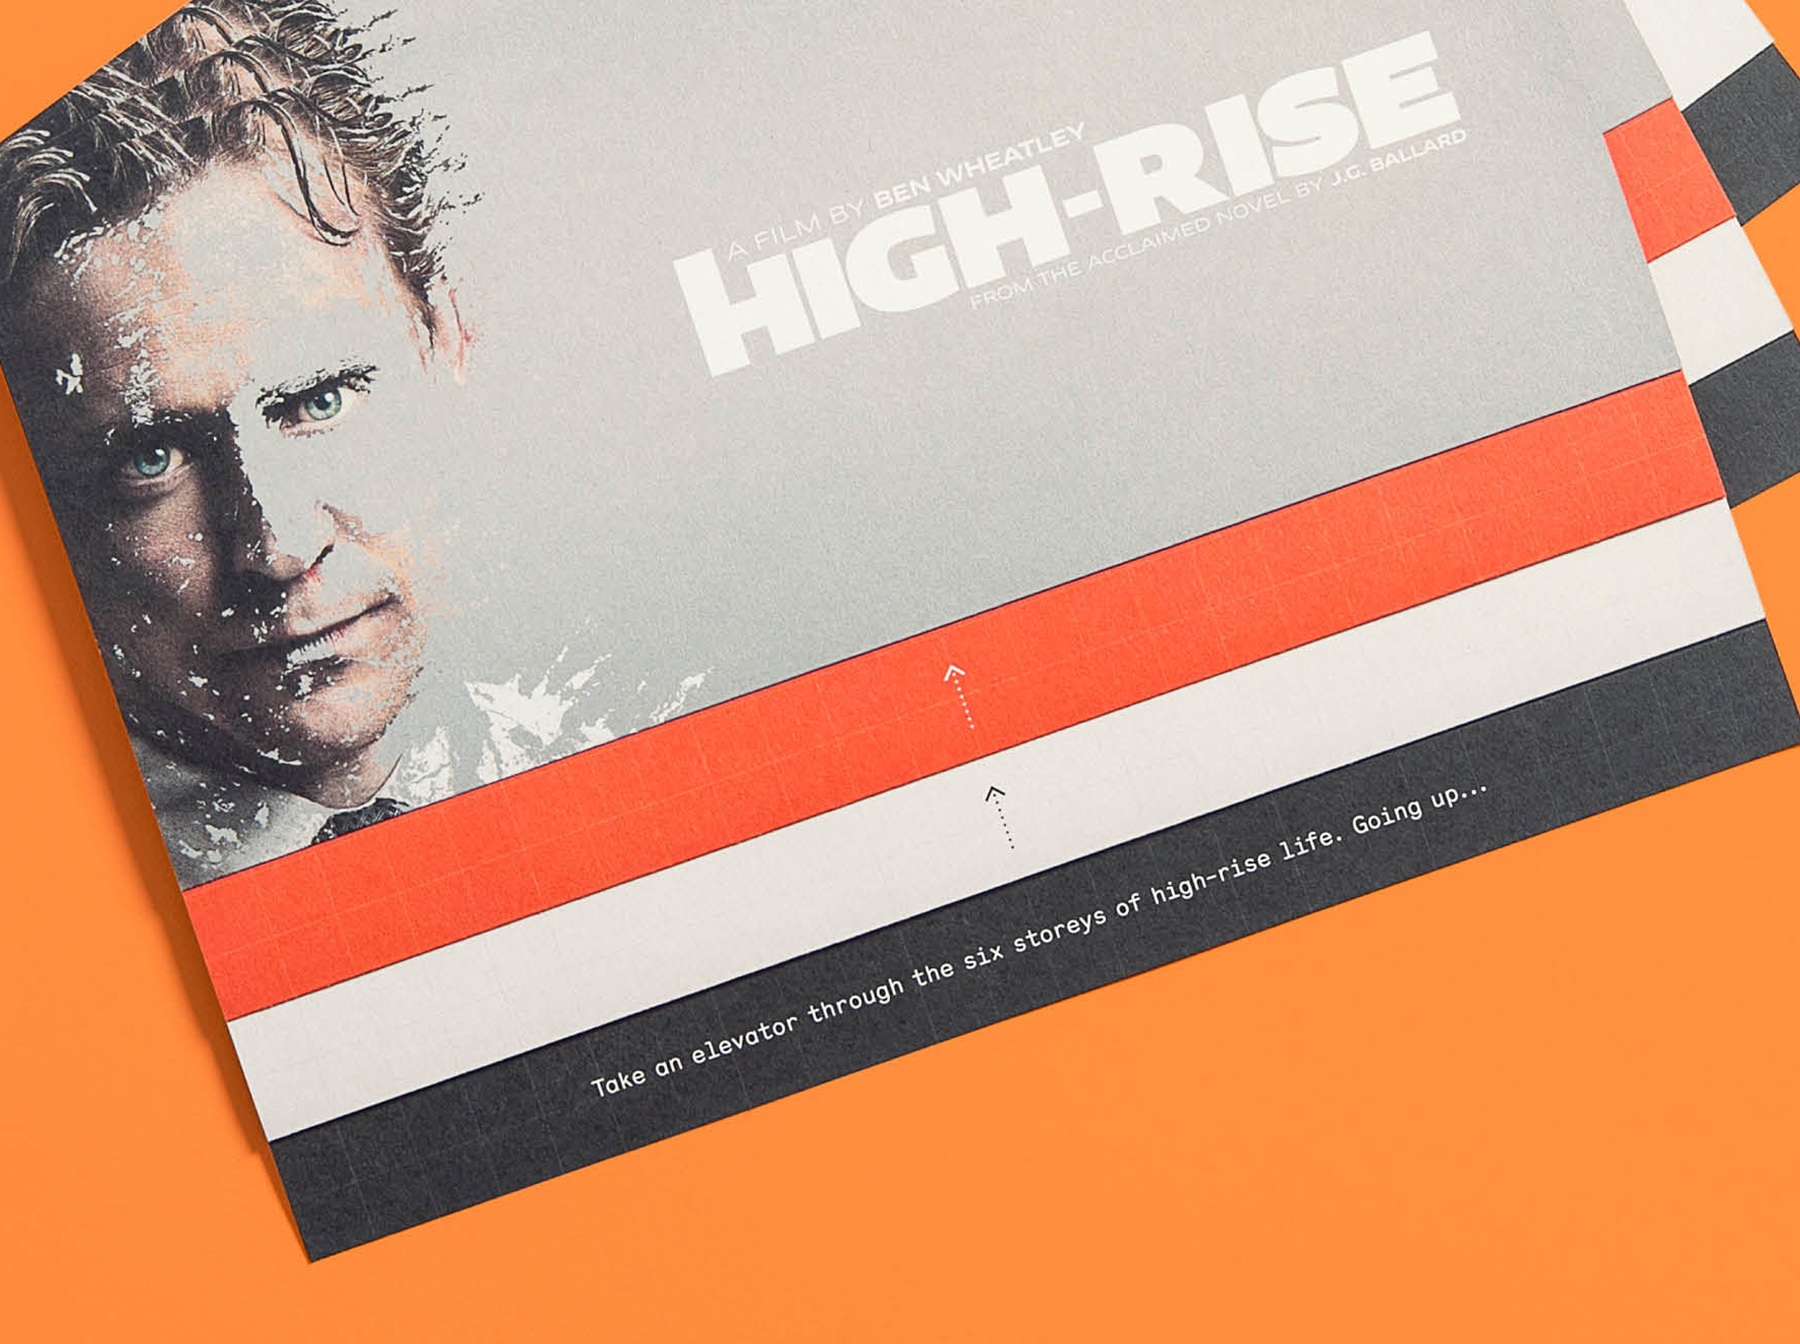 High-Rise | Evan Lelliott | Freelance Graphic Designer based in London